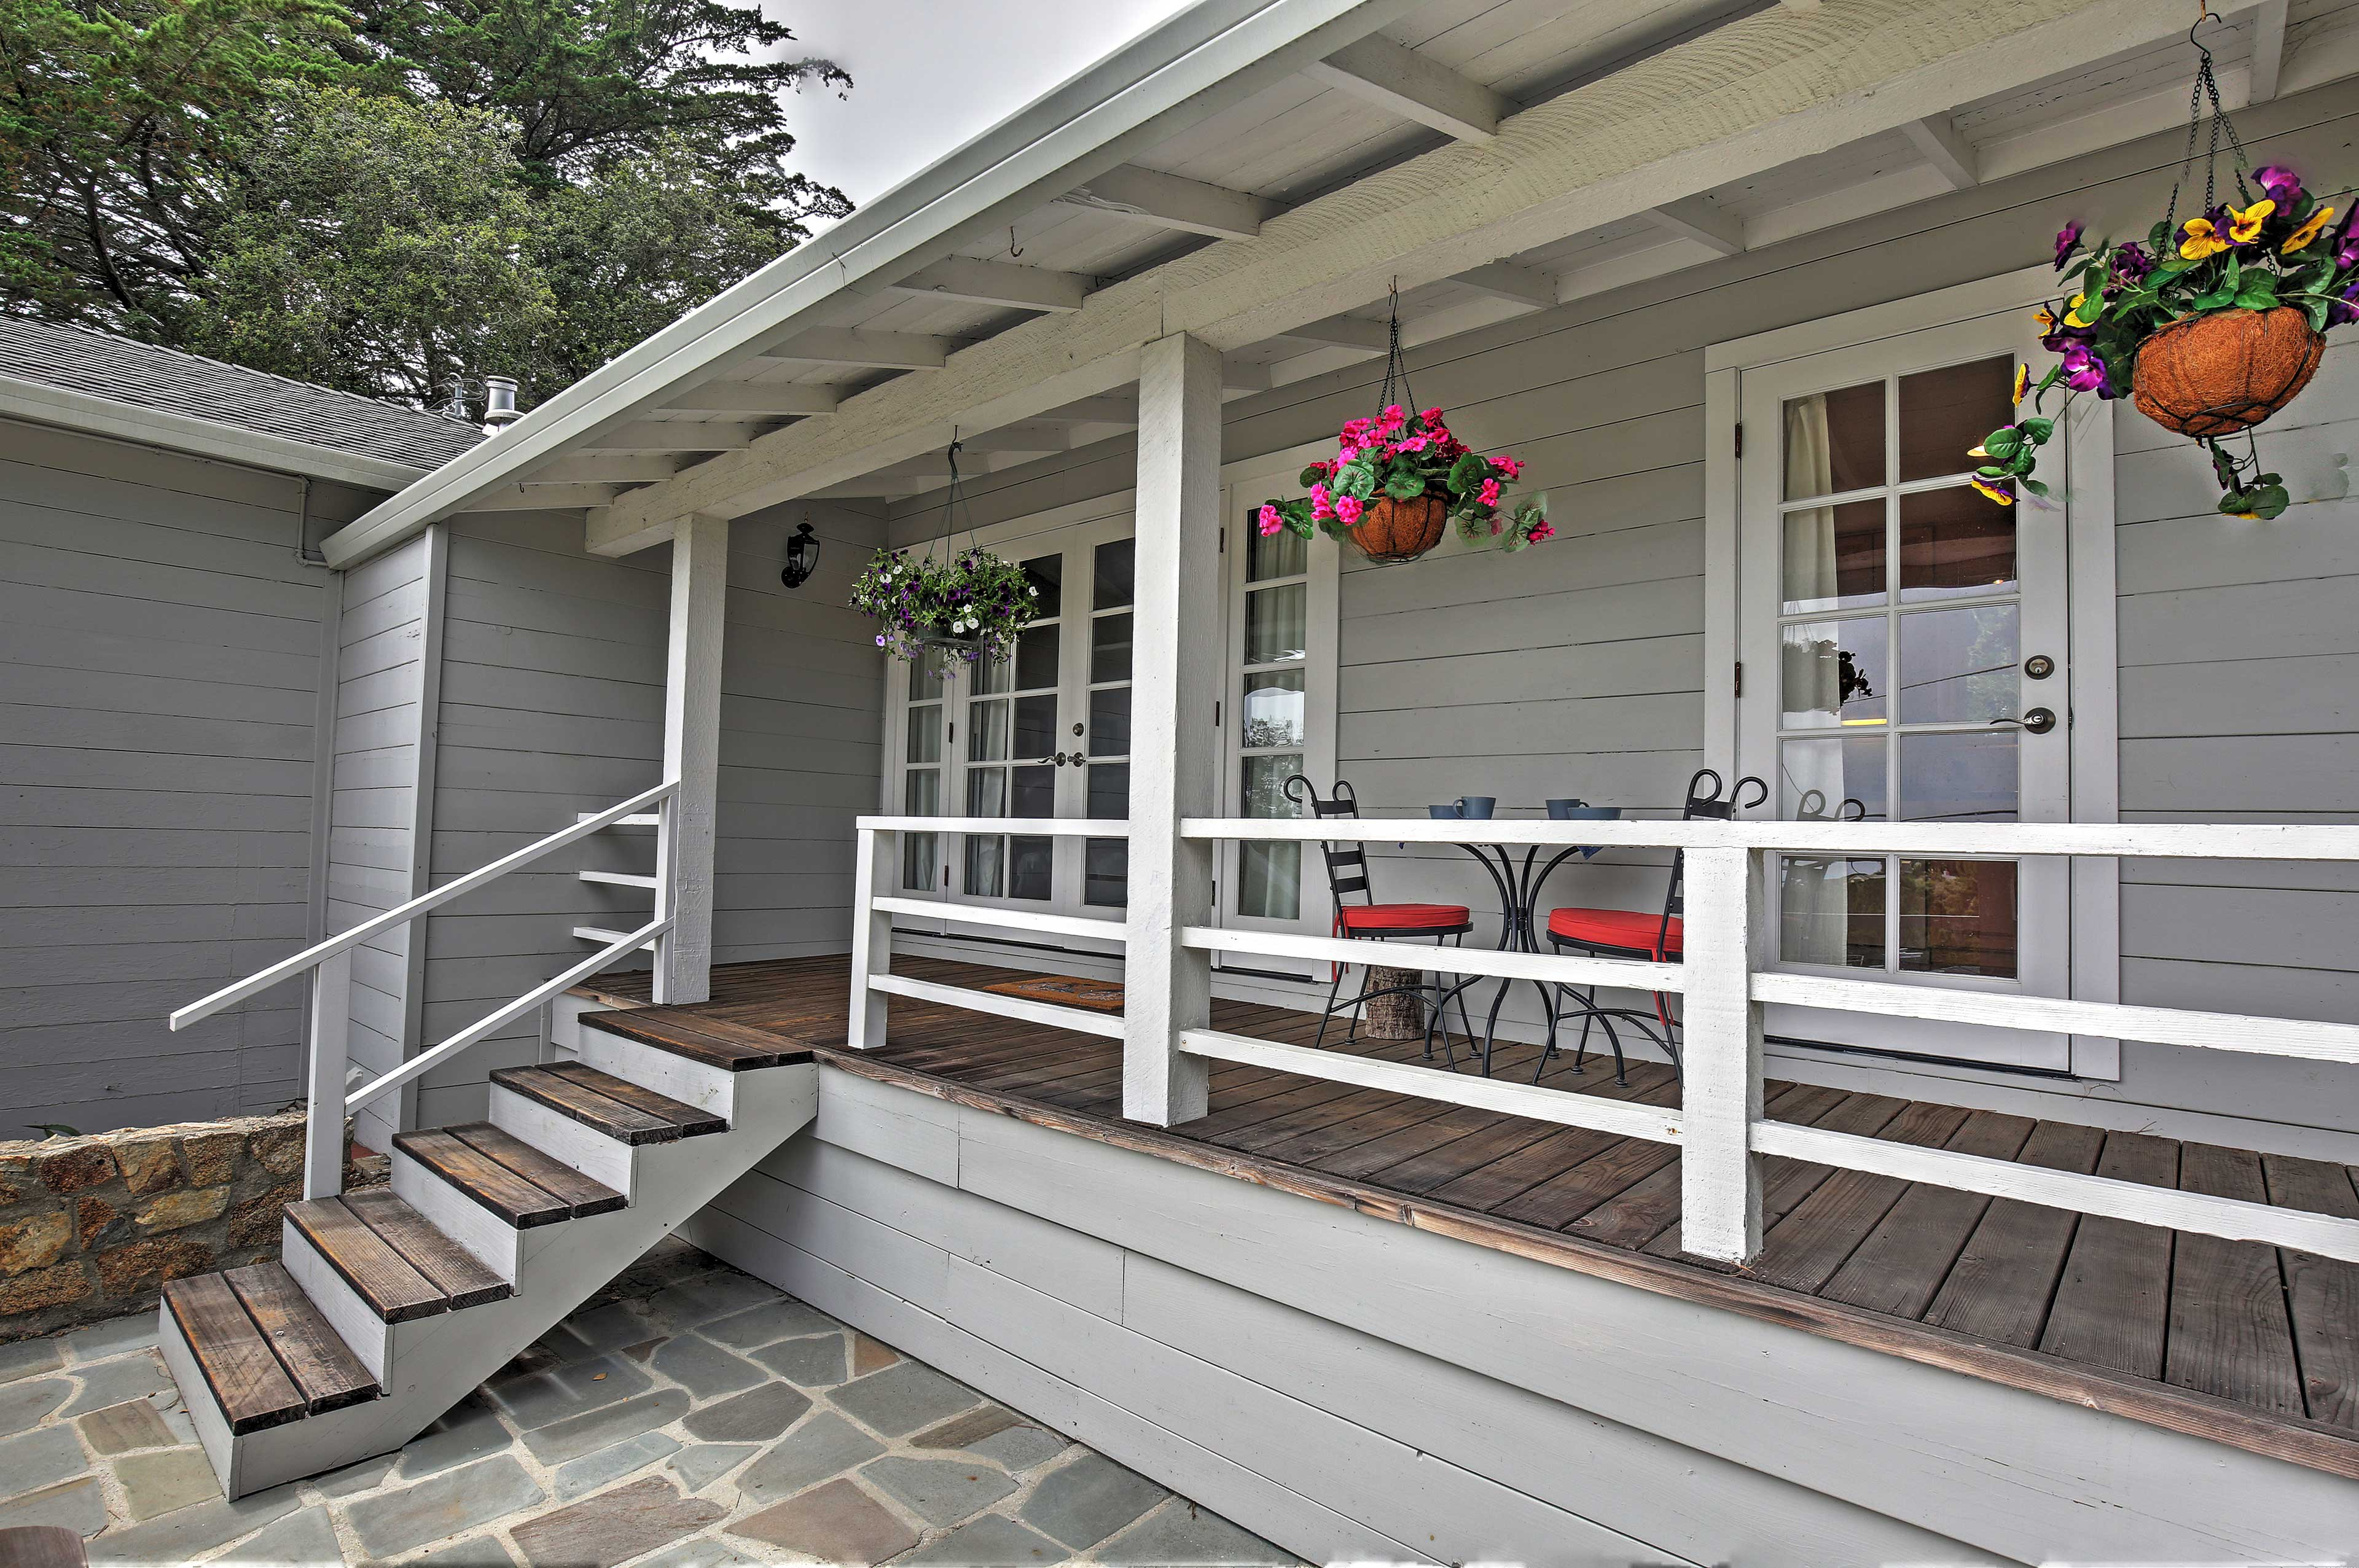 The breezy covered porch will quickly become your favorite place to unwind.